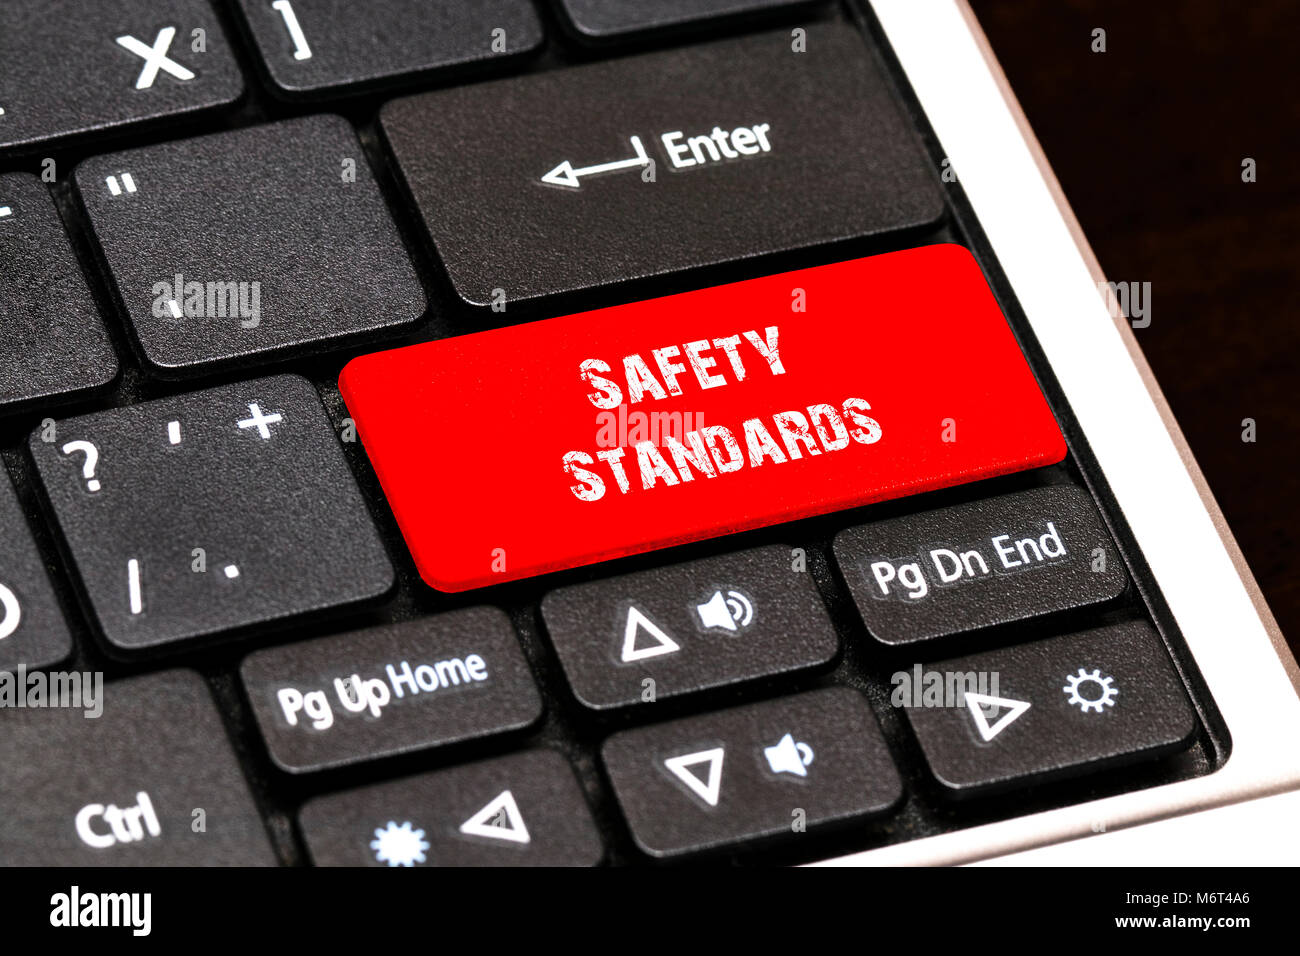 On the laptop keyboard the red button written Safety Standards. - Stock Image